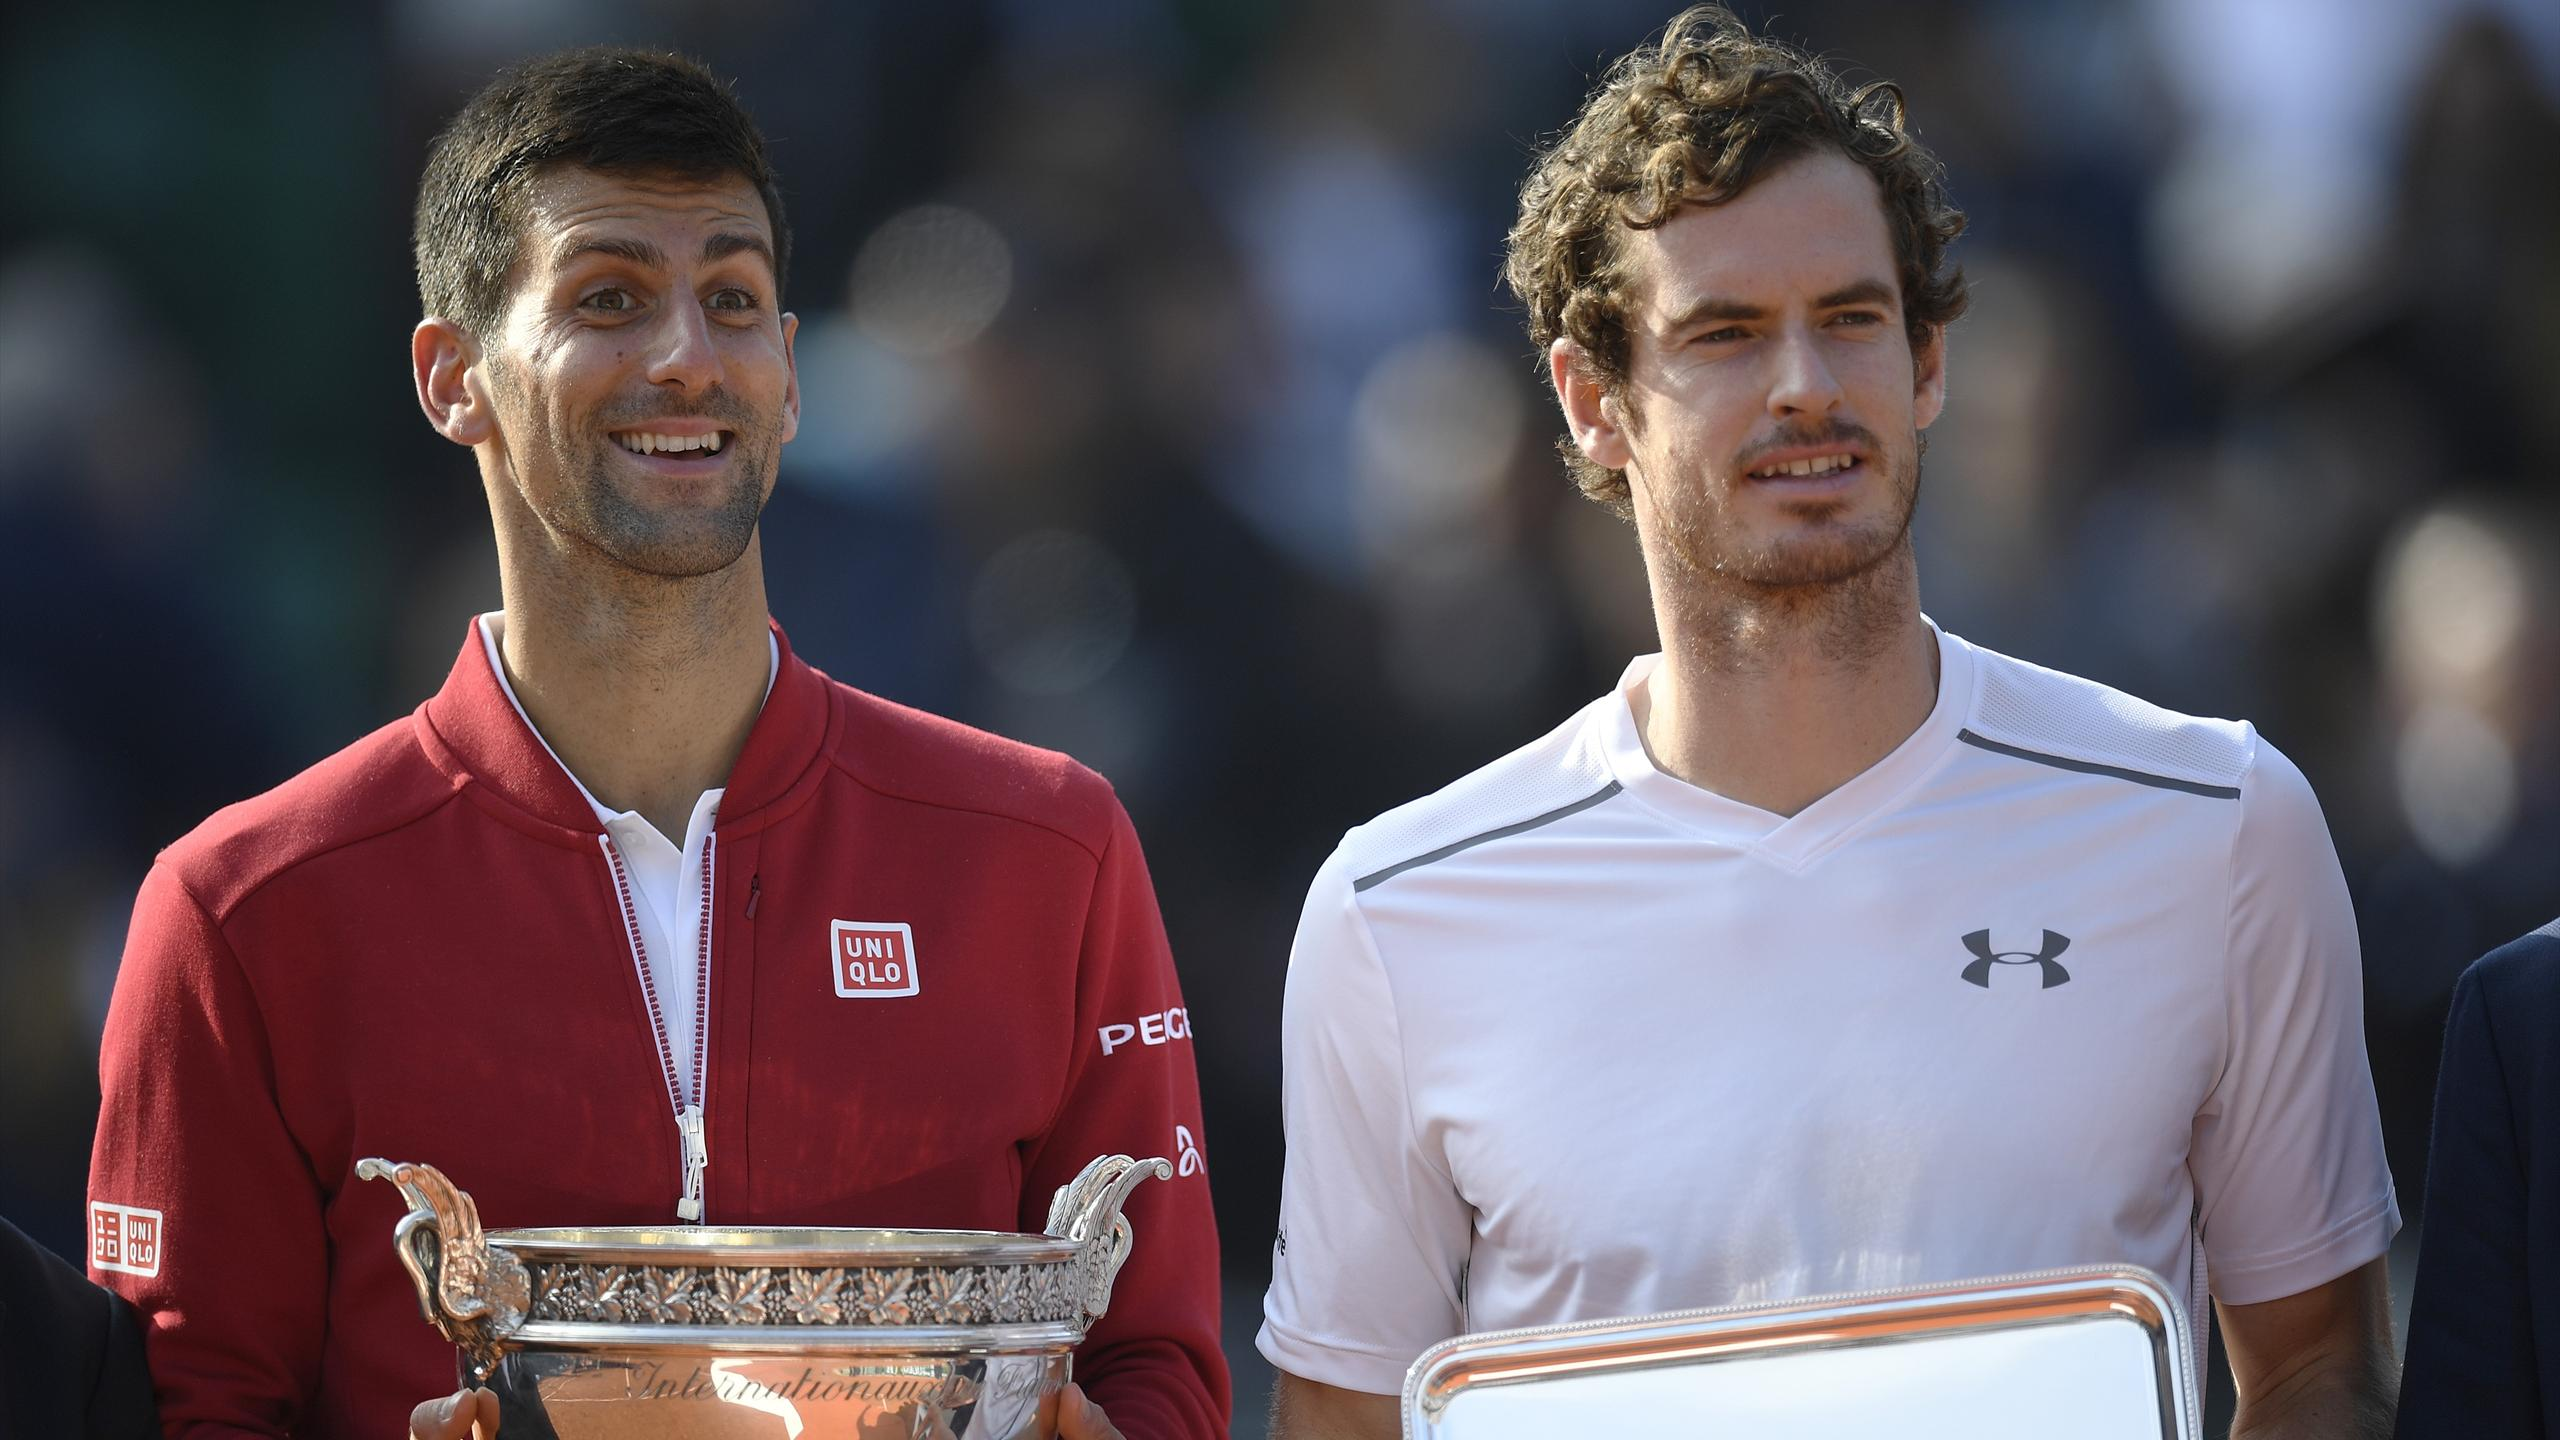 Serbia's Novak Djokovic (L) and Britain's Andy Murray